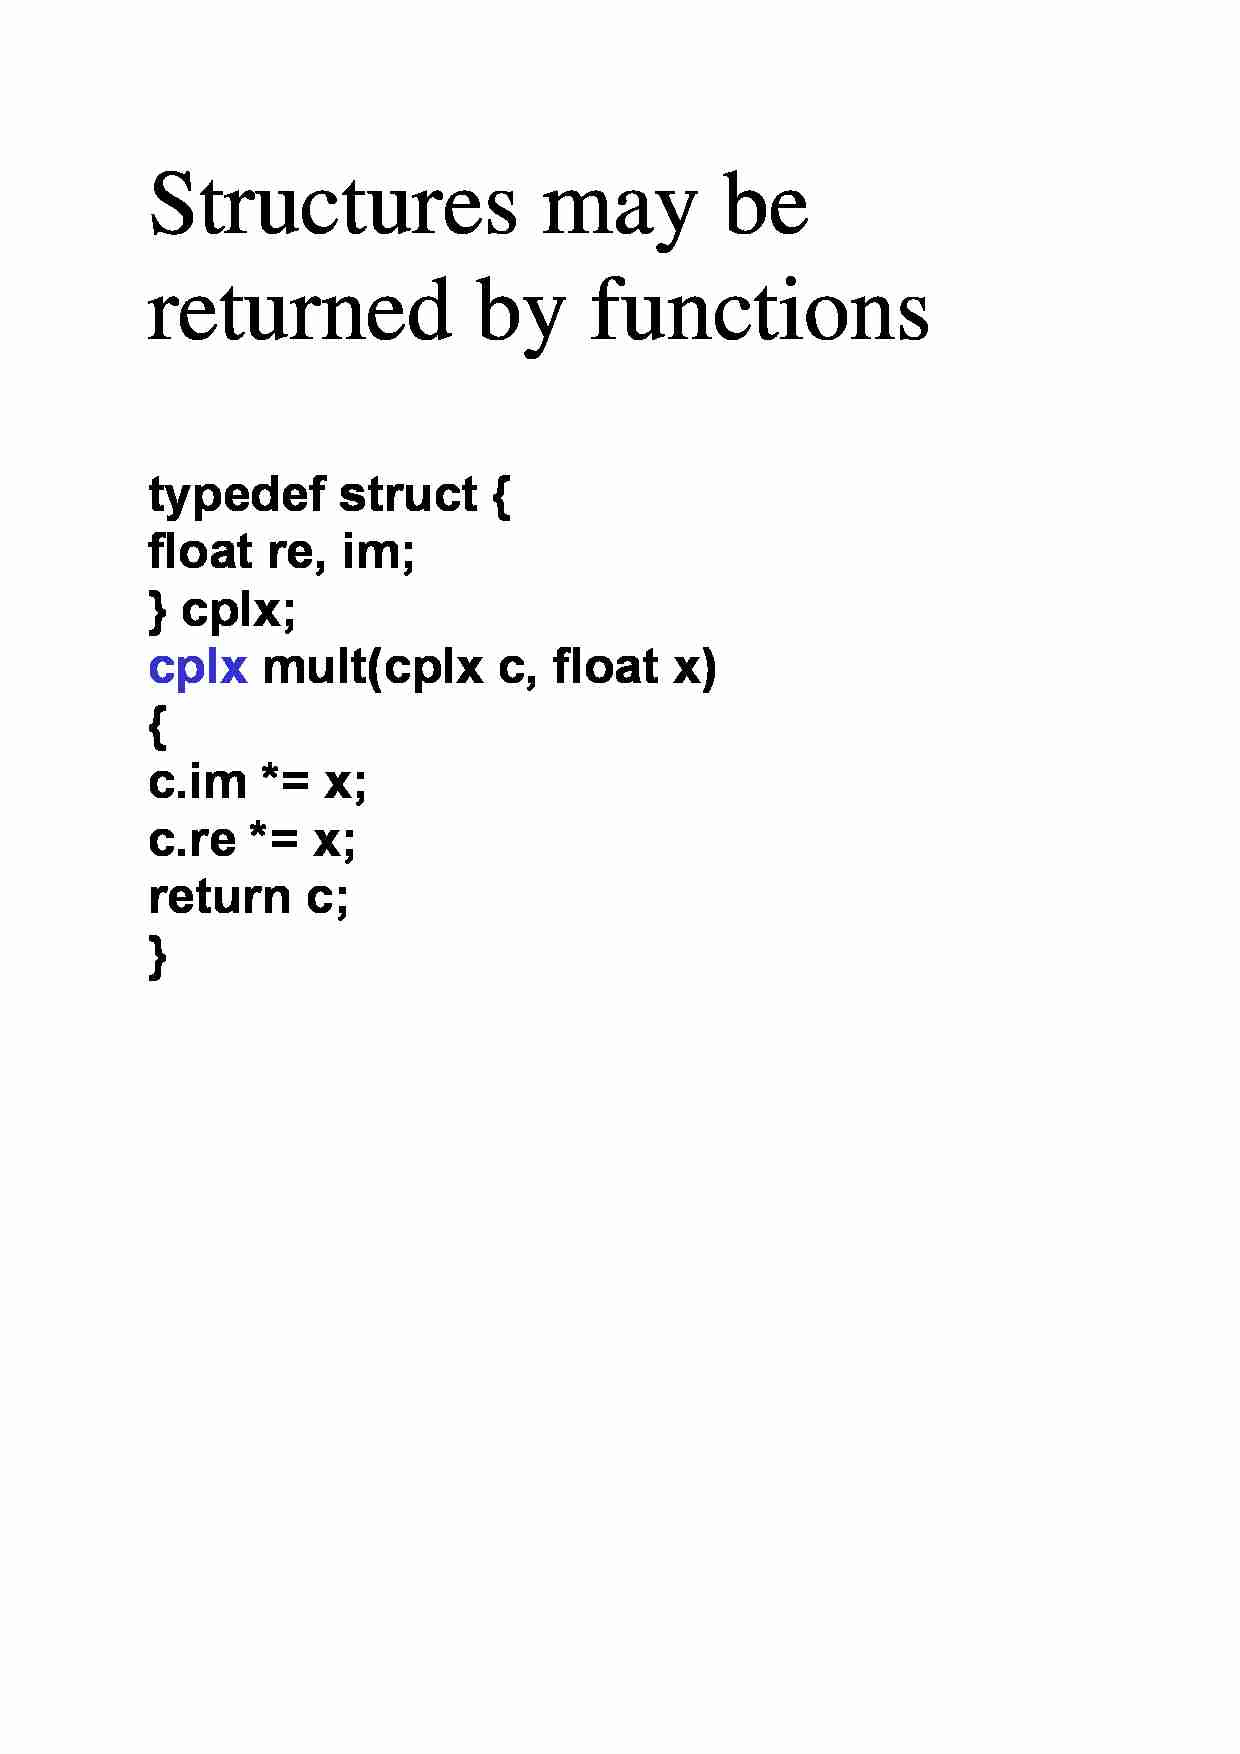 Structures may be returned by functions - strona 1